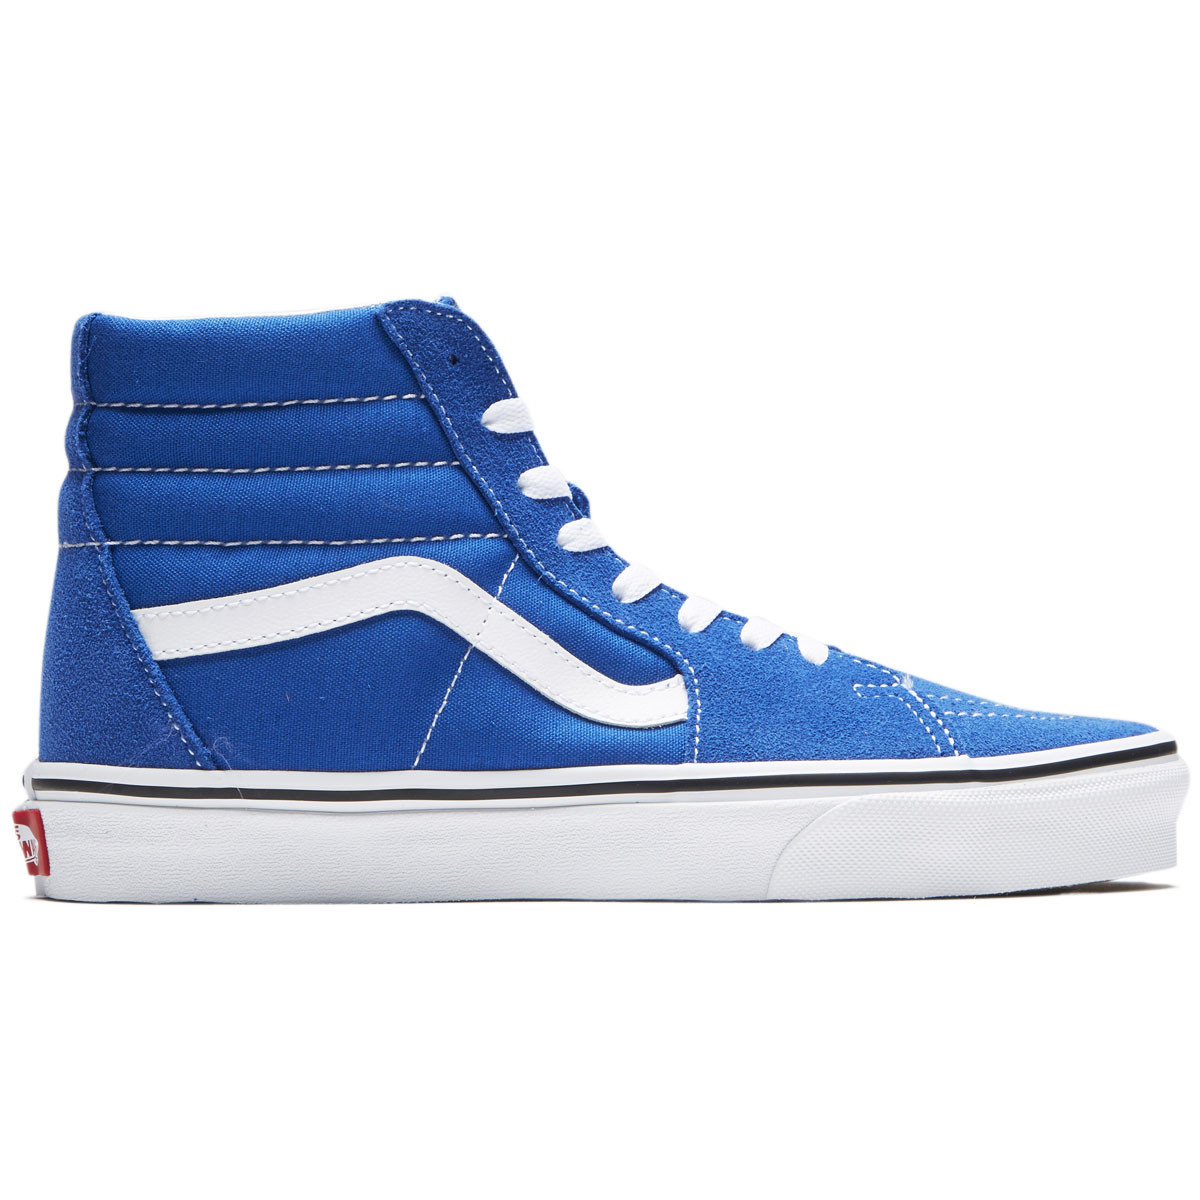 61206b97bf08f8 Vans Unisex Sk8-Hi Shoes - Lapis Blue True White - 4.5